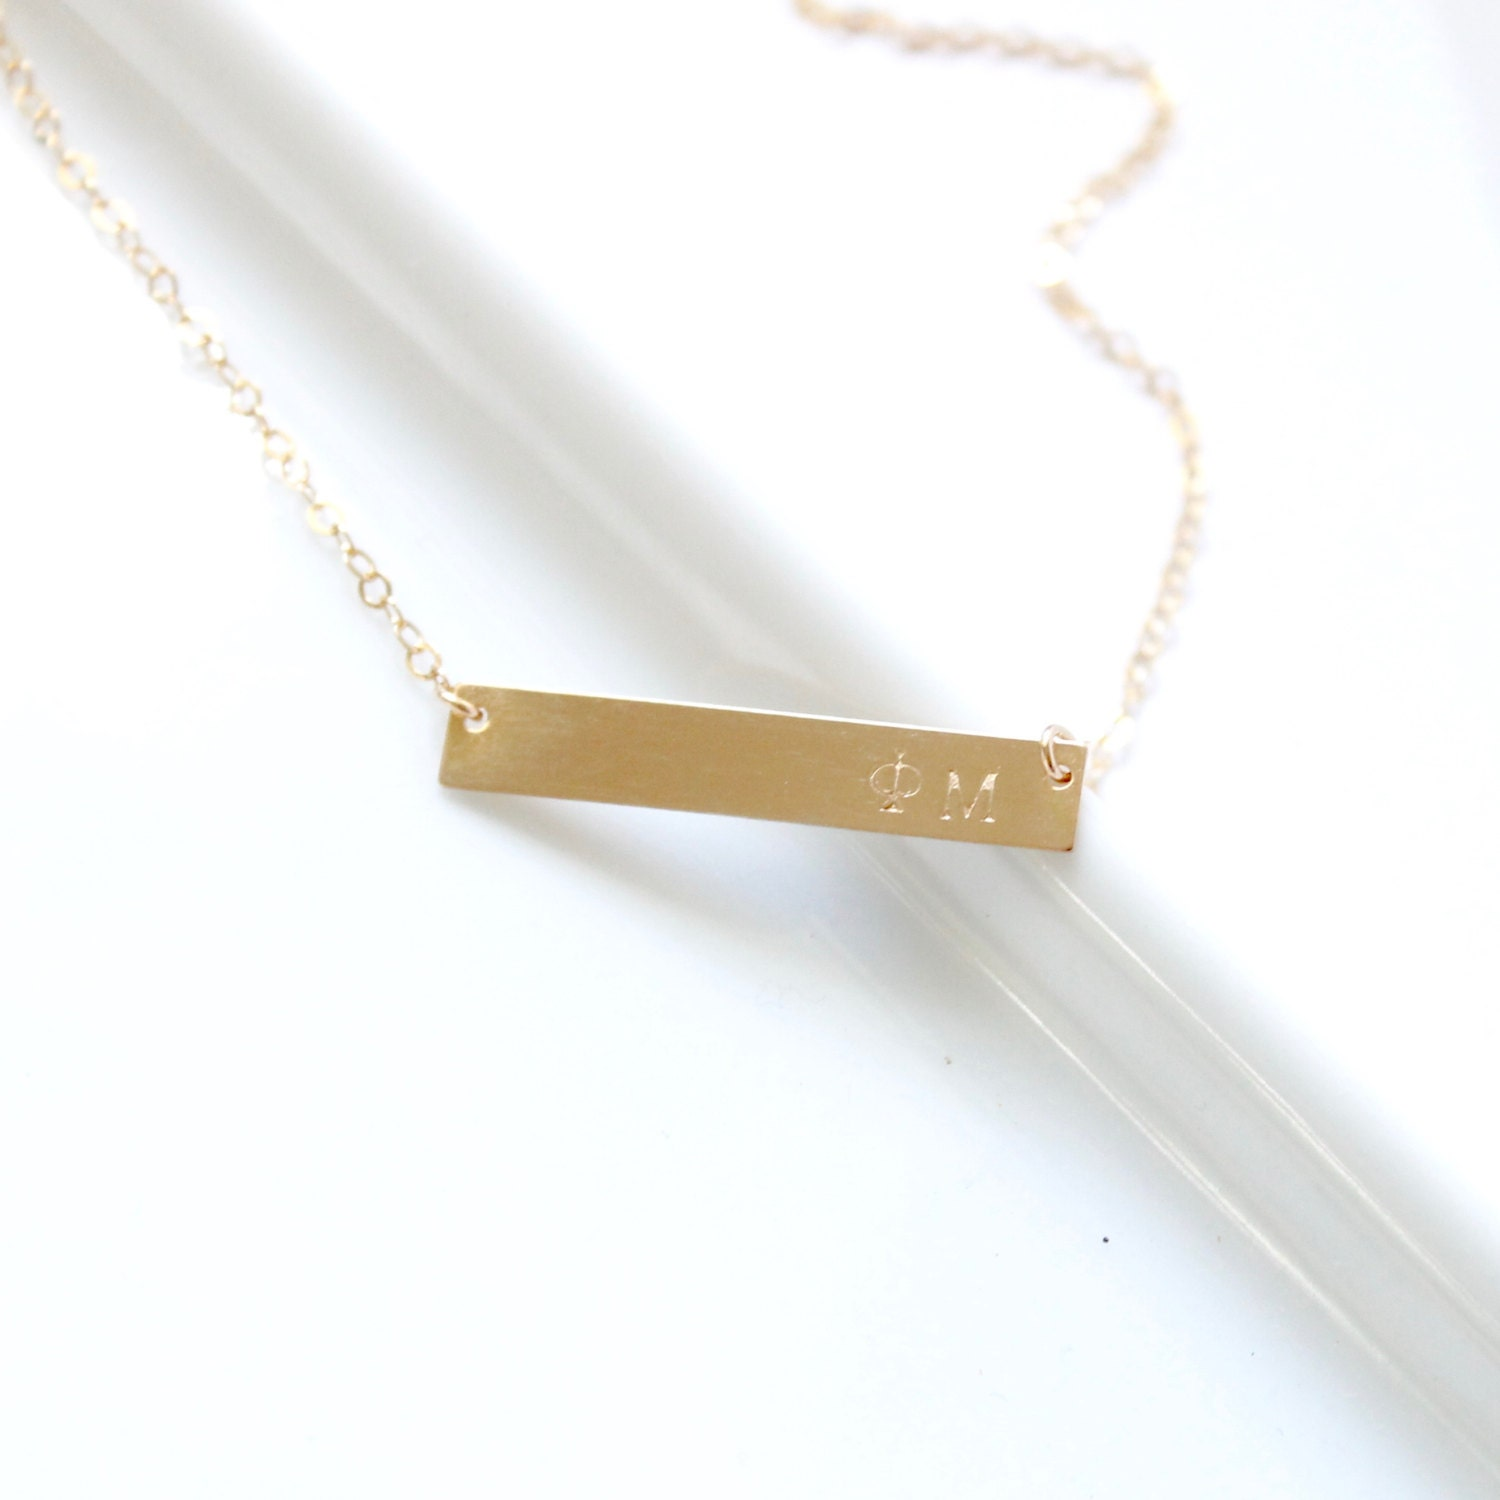 phi mu sorority necklace jewelry sted bar